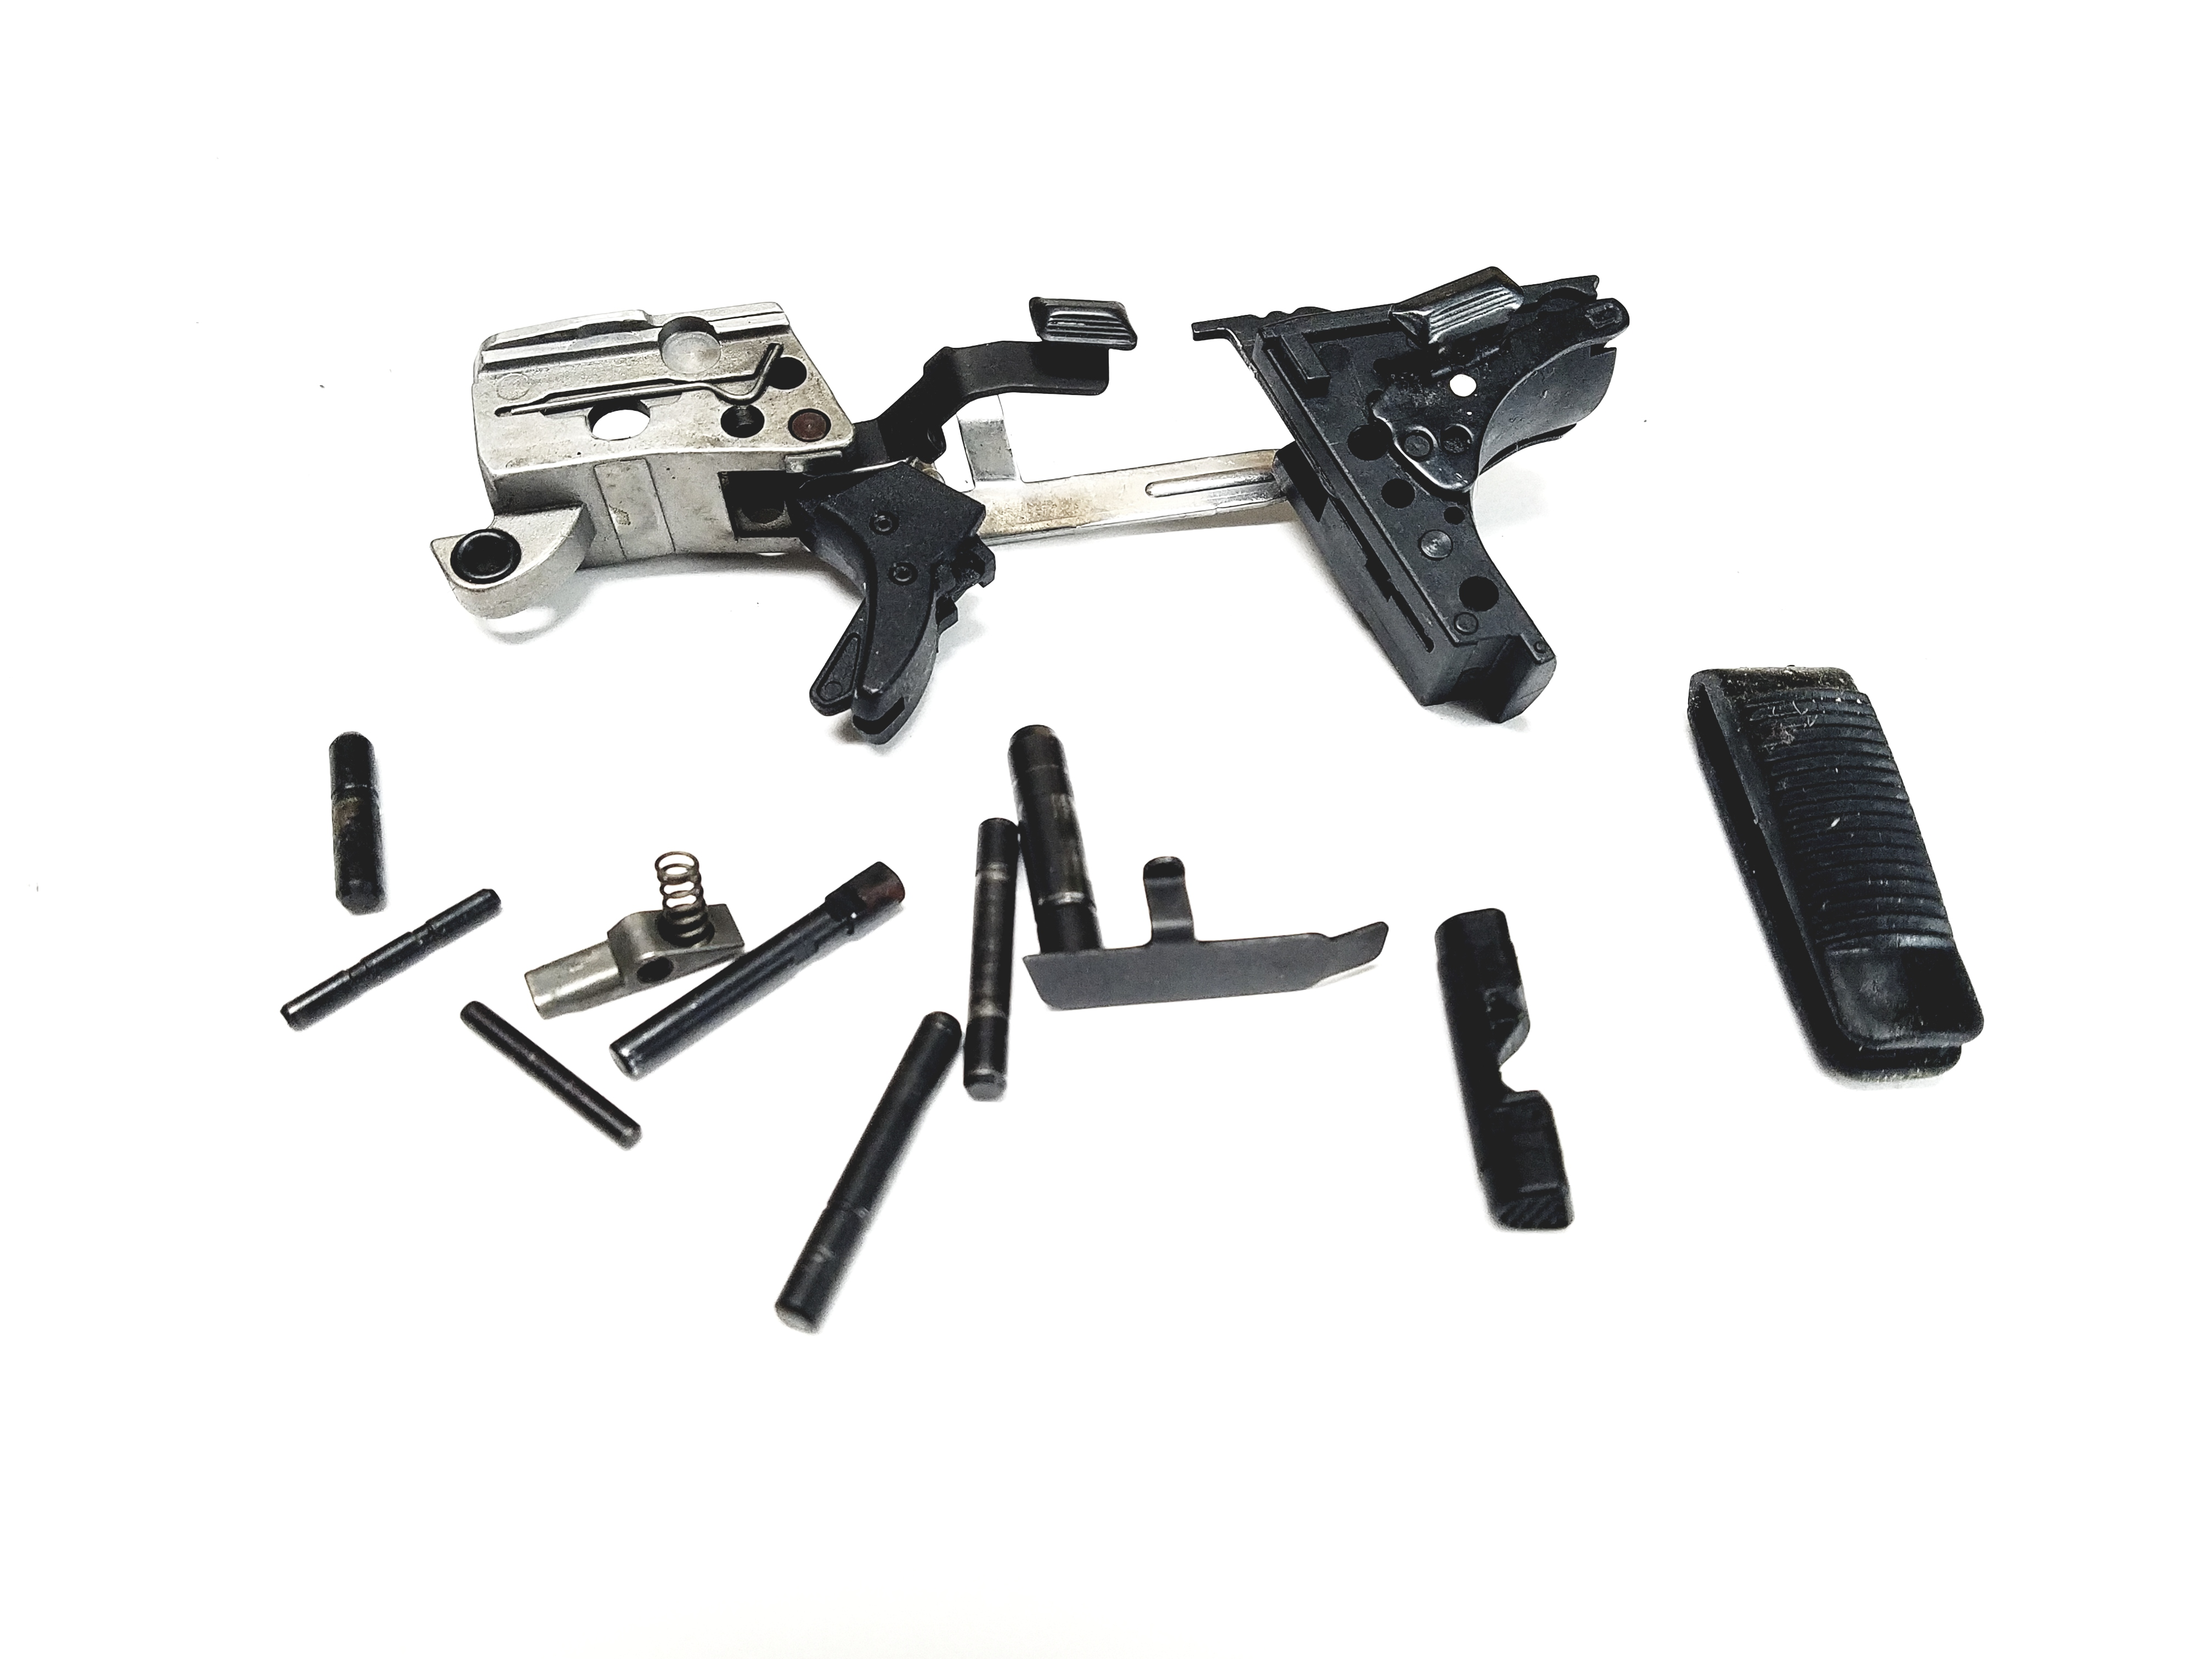 Ruger SR9C Trigger and Small Parts Kit - Stainless - 9mm - No FFL Required